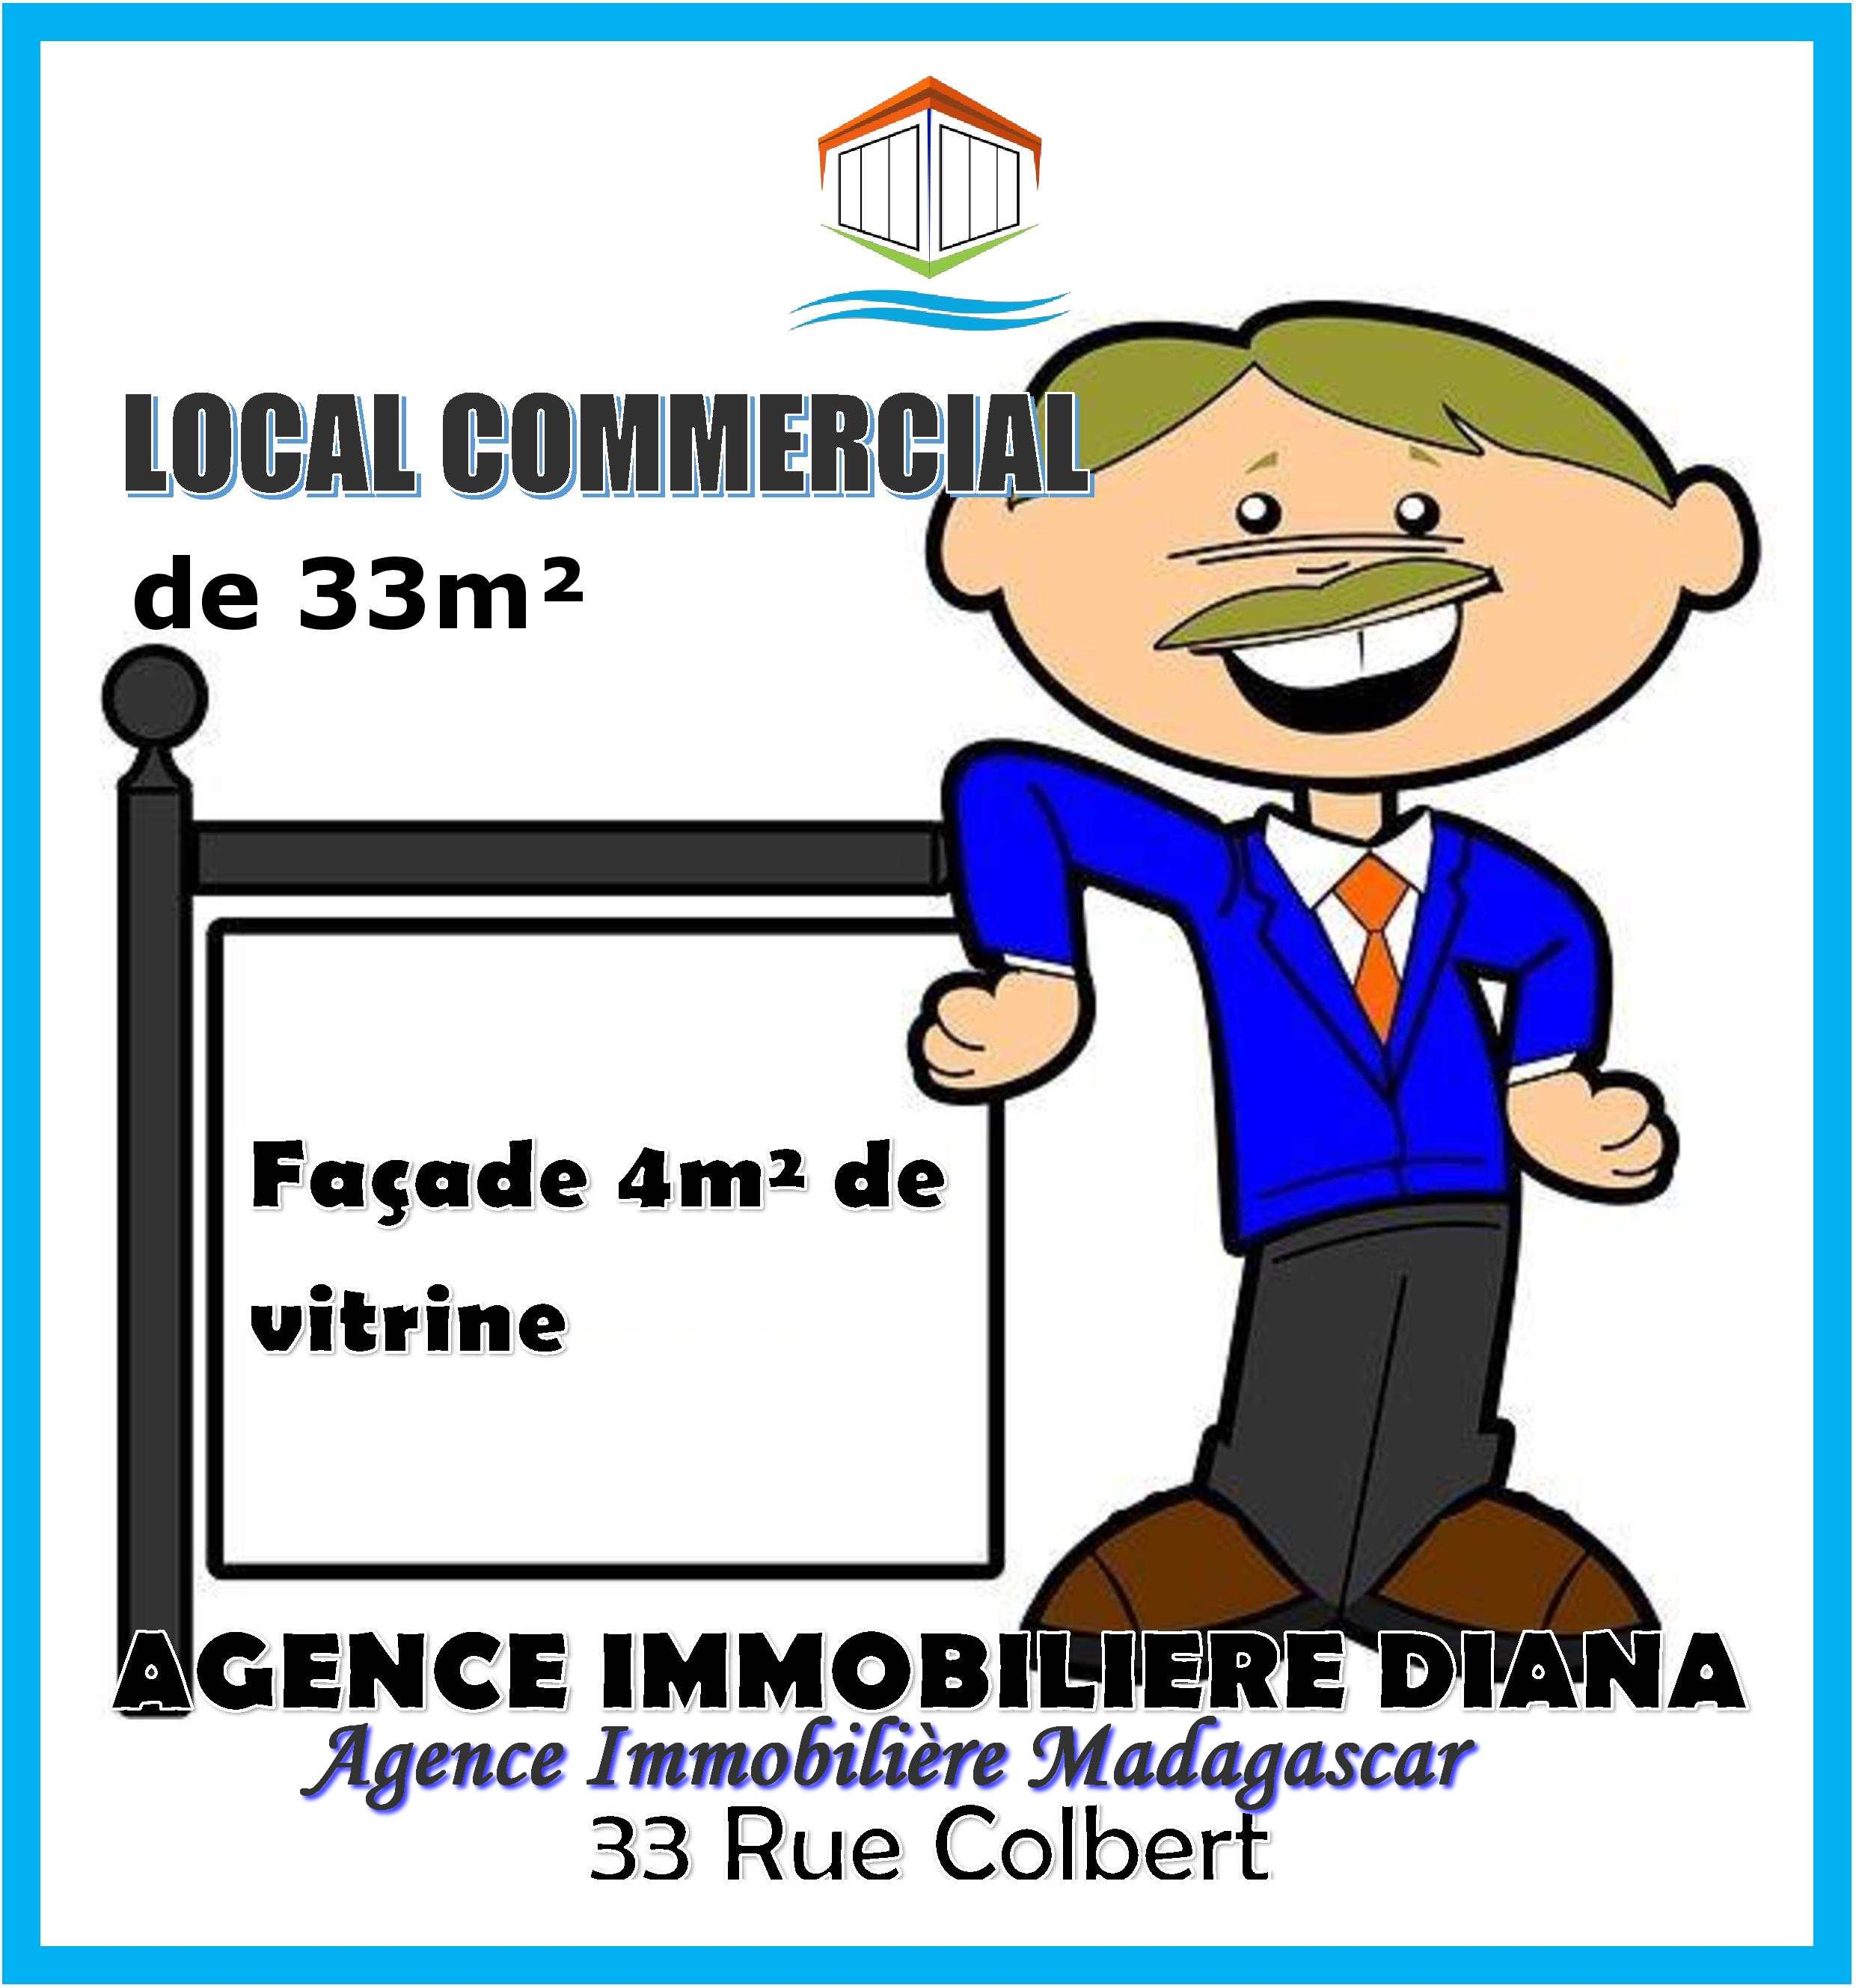 location-local-commercial-diego-suarez.jpg